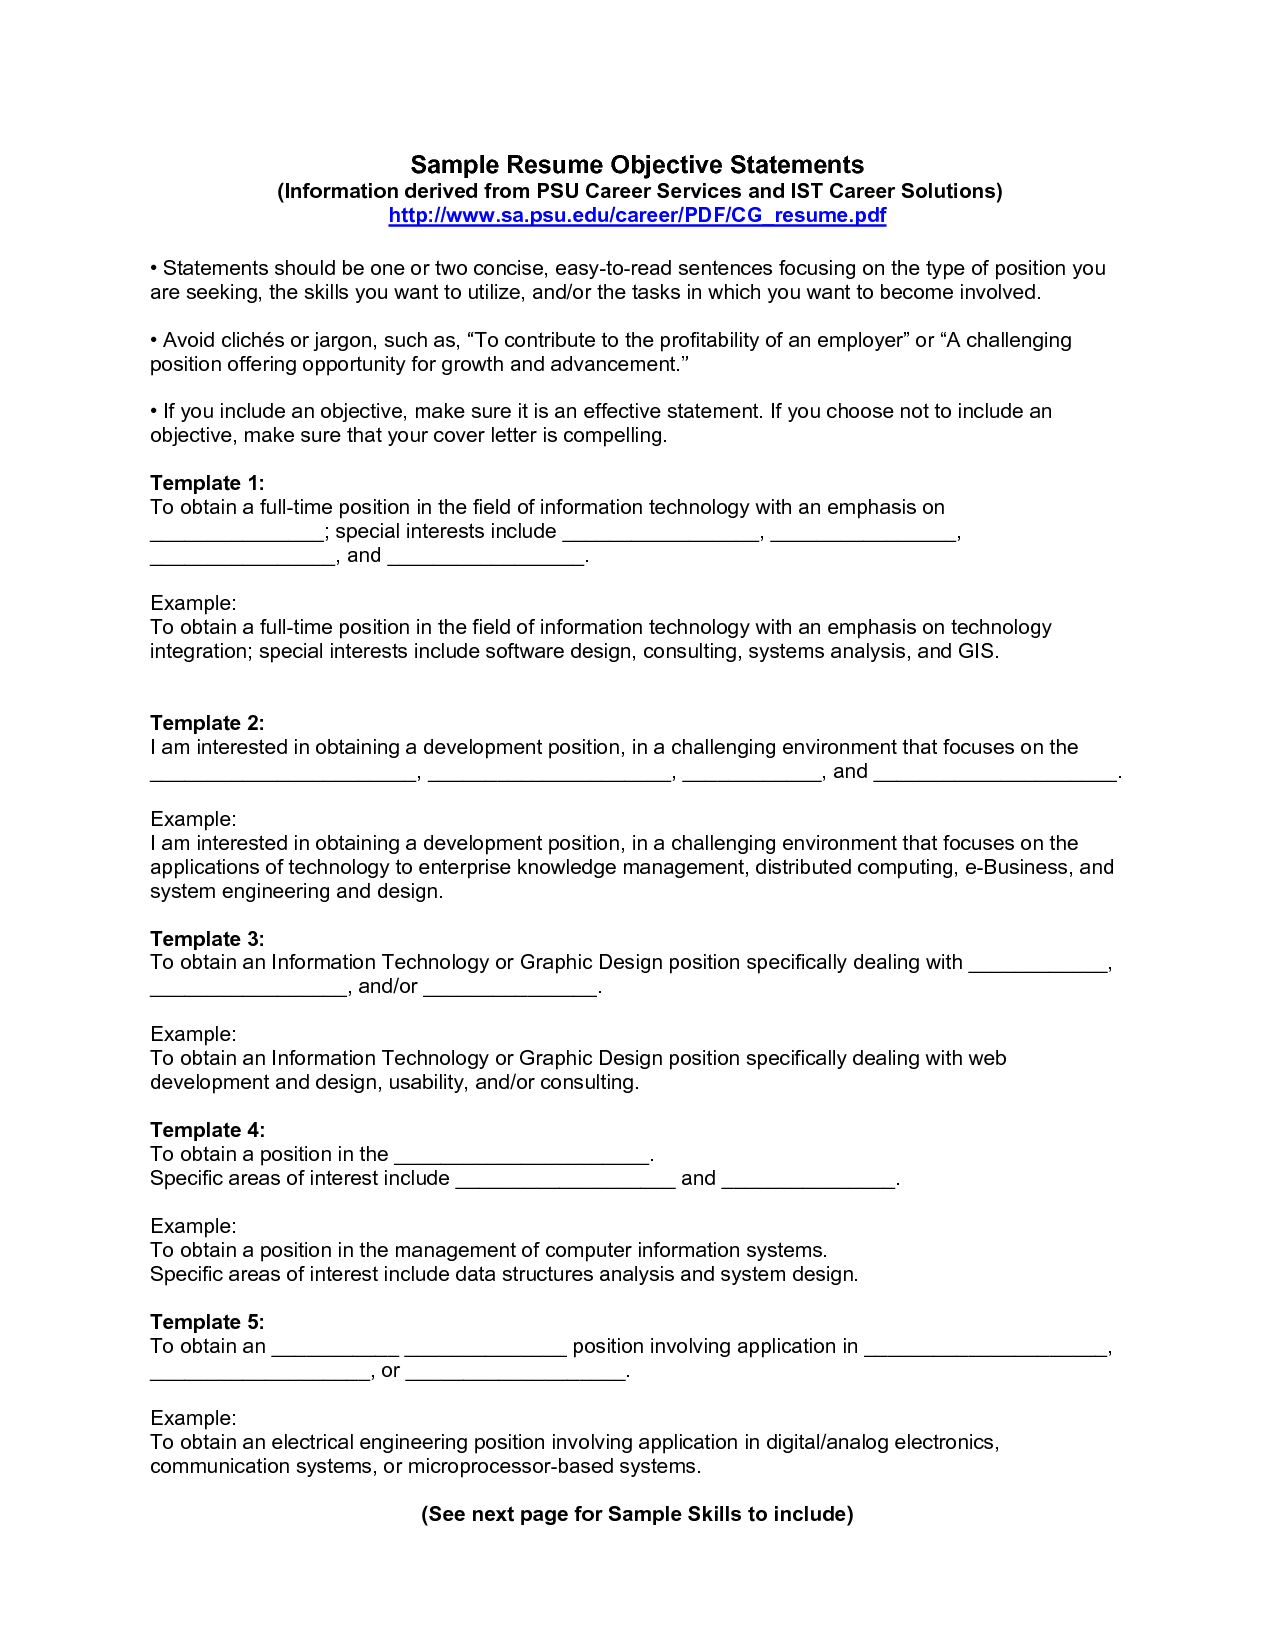 resume objective examples statement and resume career objective statement examples - Examples For Resume Objectives